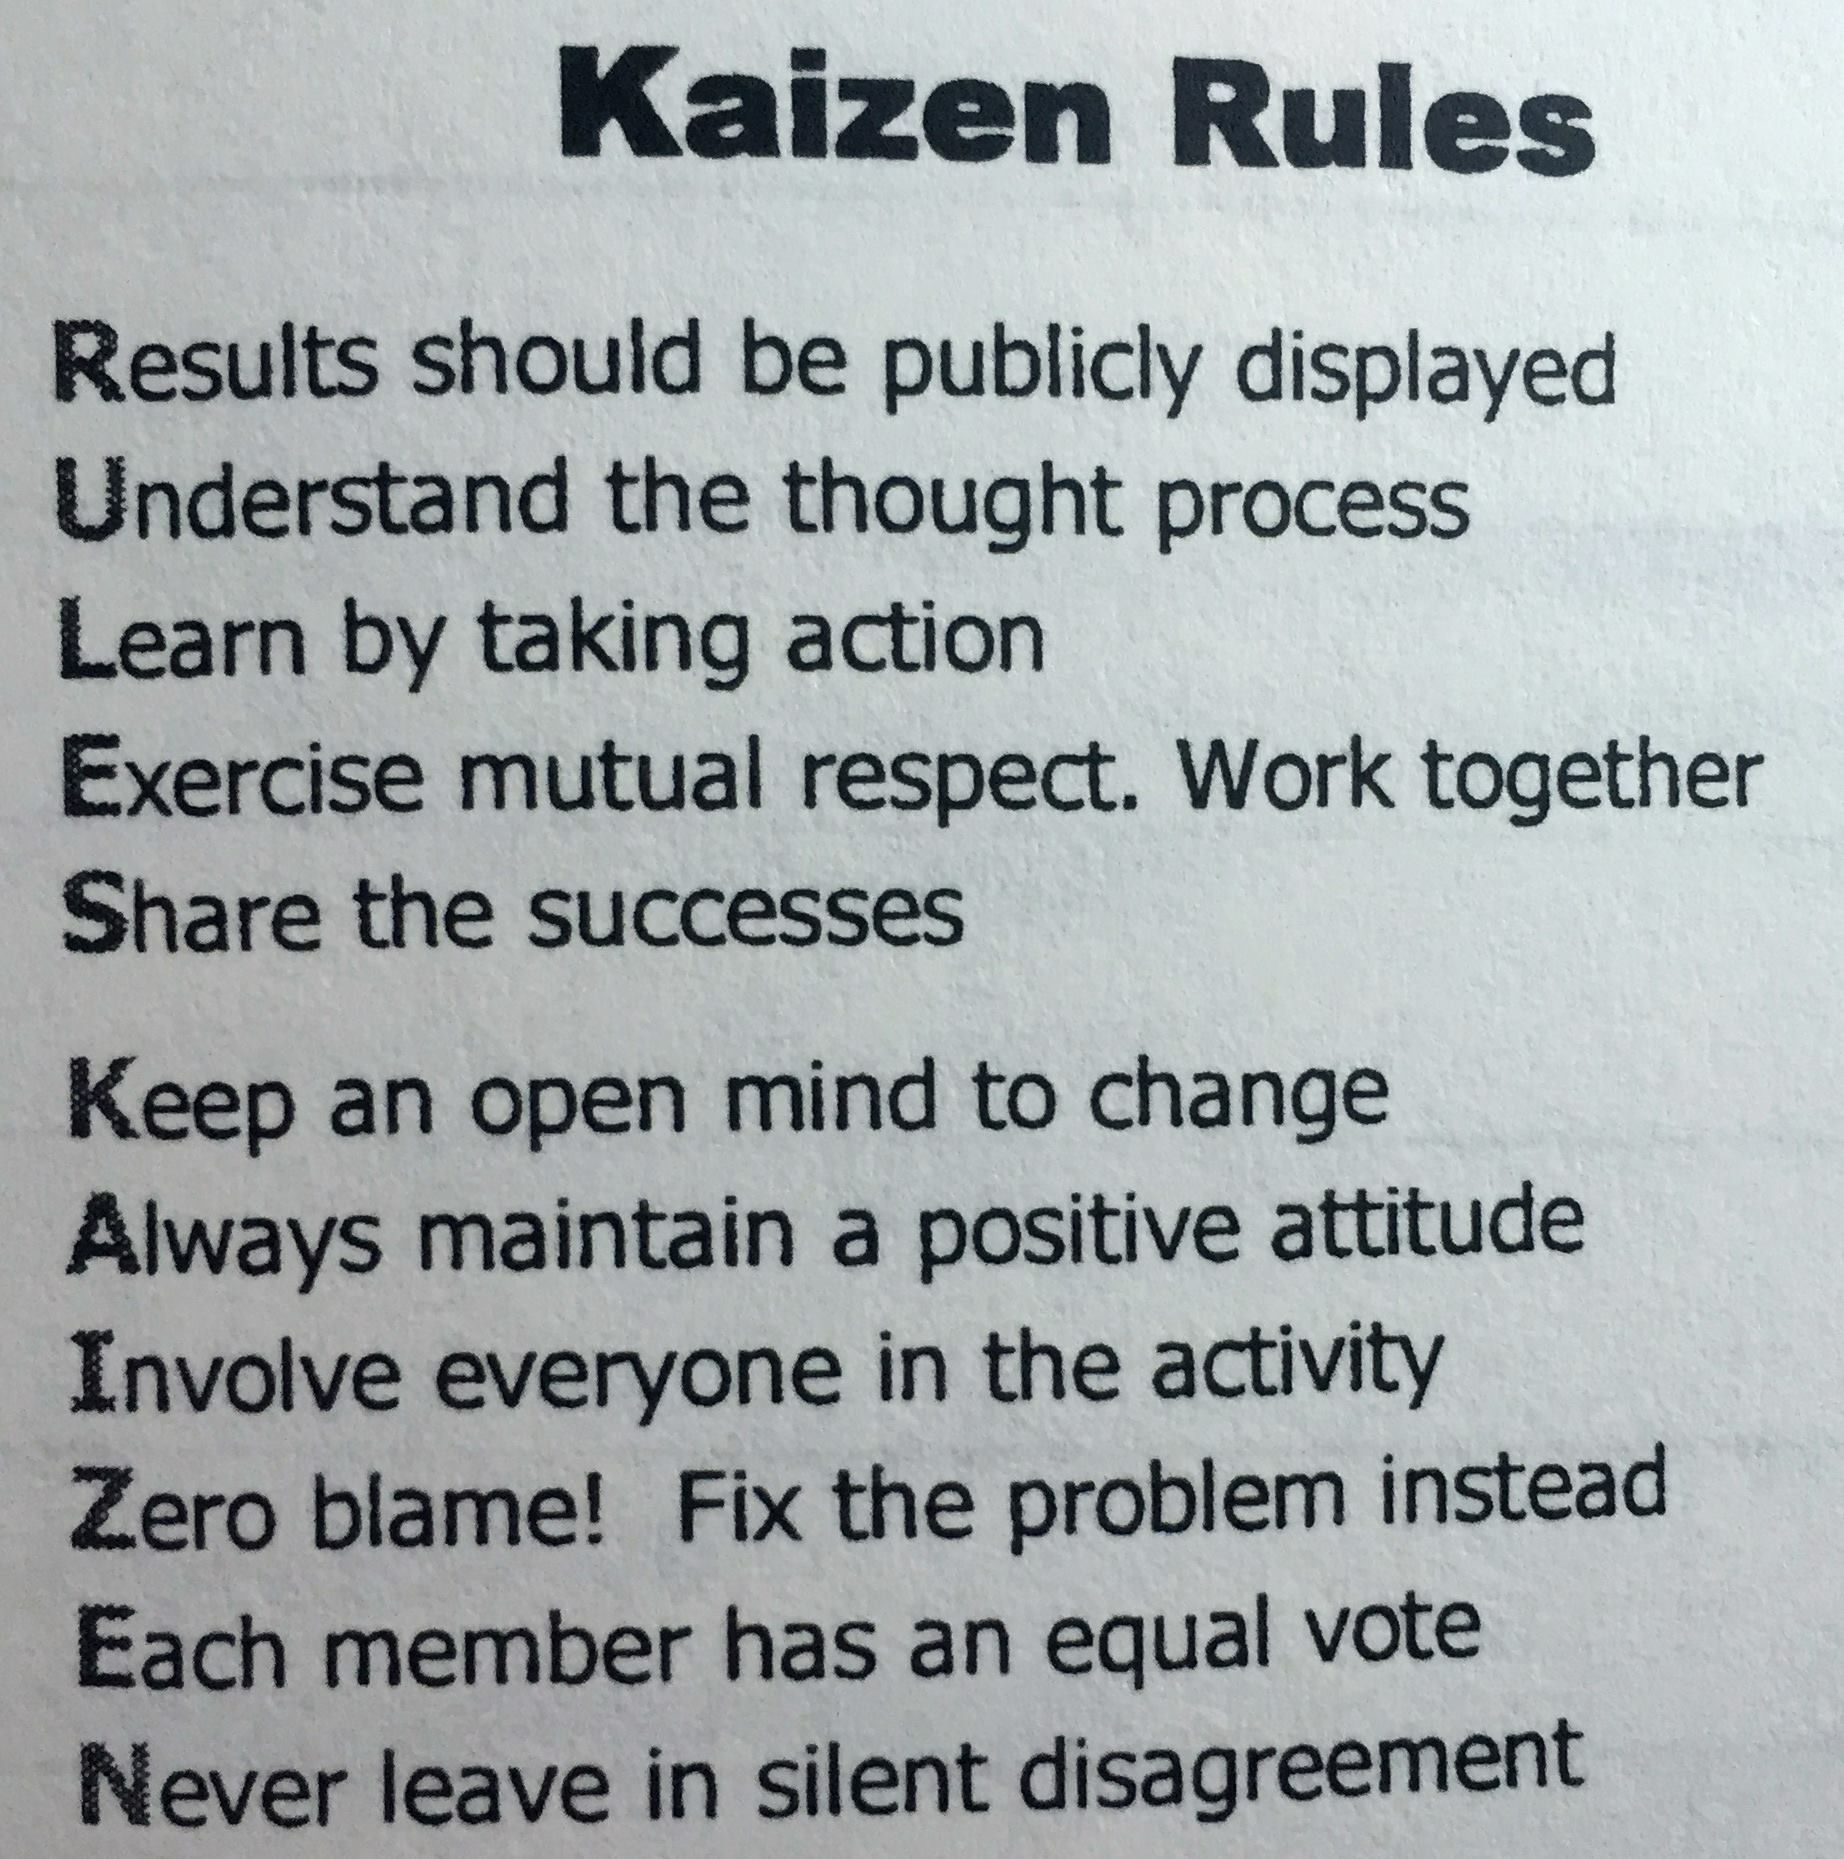 kaizen essay Kaizen is a total philosophy that strives for perfection and sustains tps on a daily basis when ohno and his team emerged from the shop floor with a new manufacturing system, it wasn't just for one company in a particular market and culture.